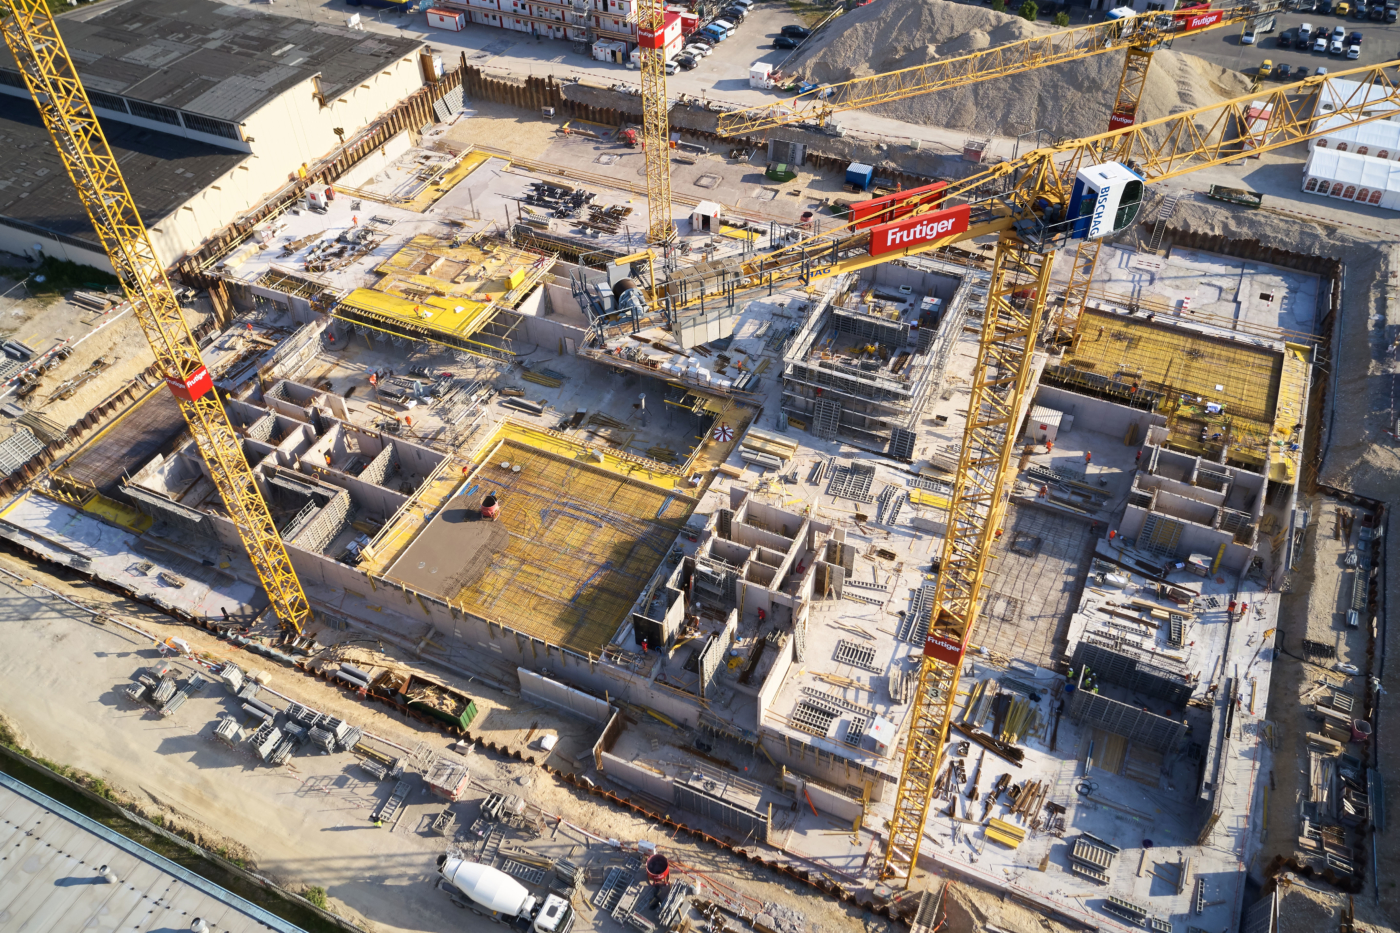 Photos for this media folder, uptownBasel is currently the largest construction site in northwestern Switzerland. Construction started on 28 March 2019 for the first large building on the site and work is already underway.  © Copyright Bela Böke, arbel gmbh  Digitale Medienmappe «Laying the uptownBasel foundation stone: a quantum leap for the industry», uptownBasel